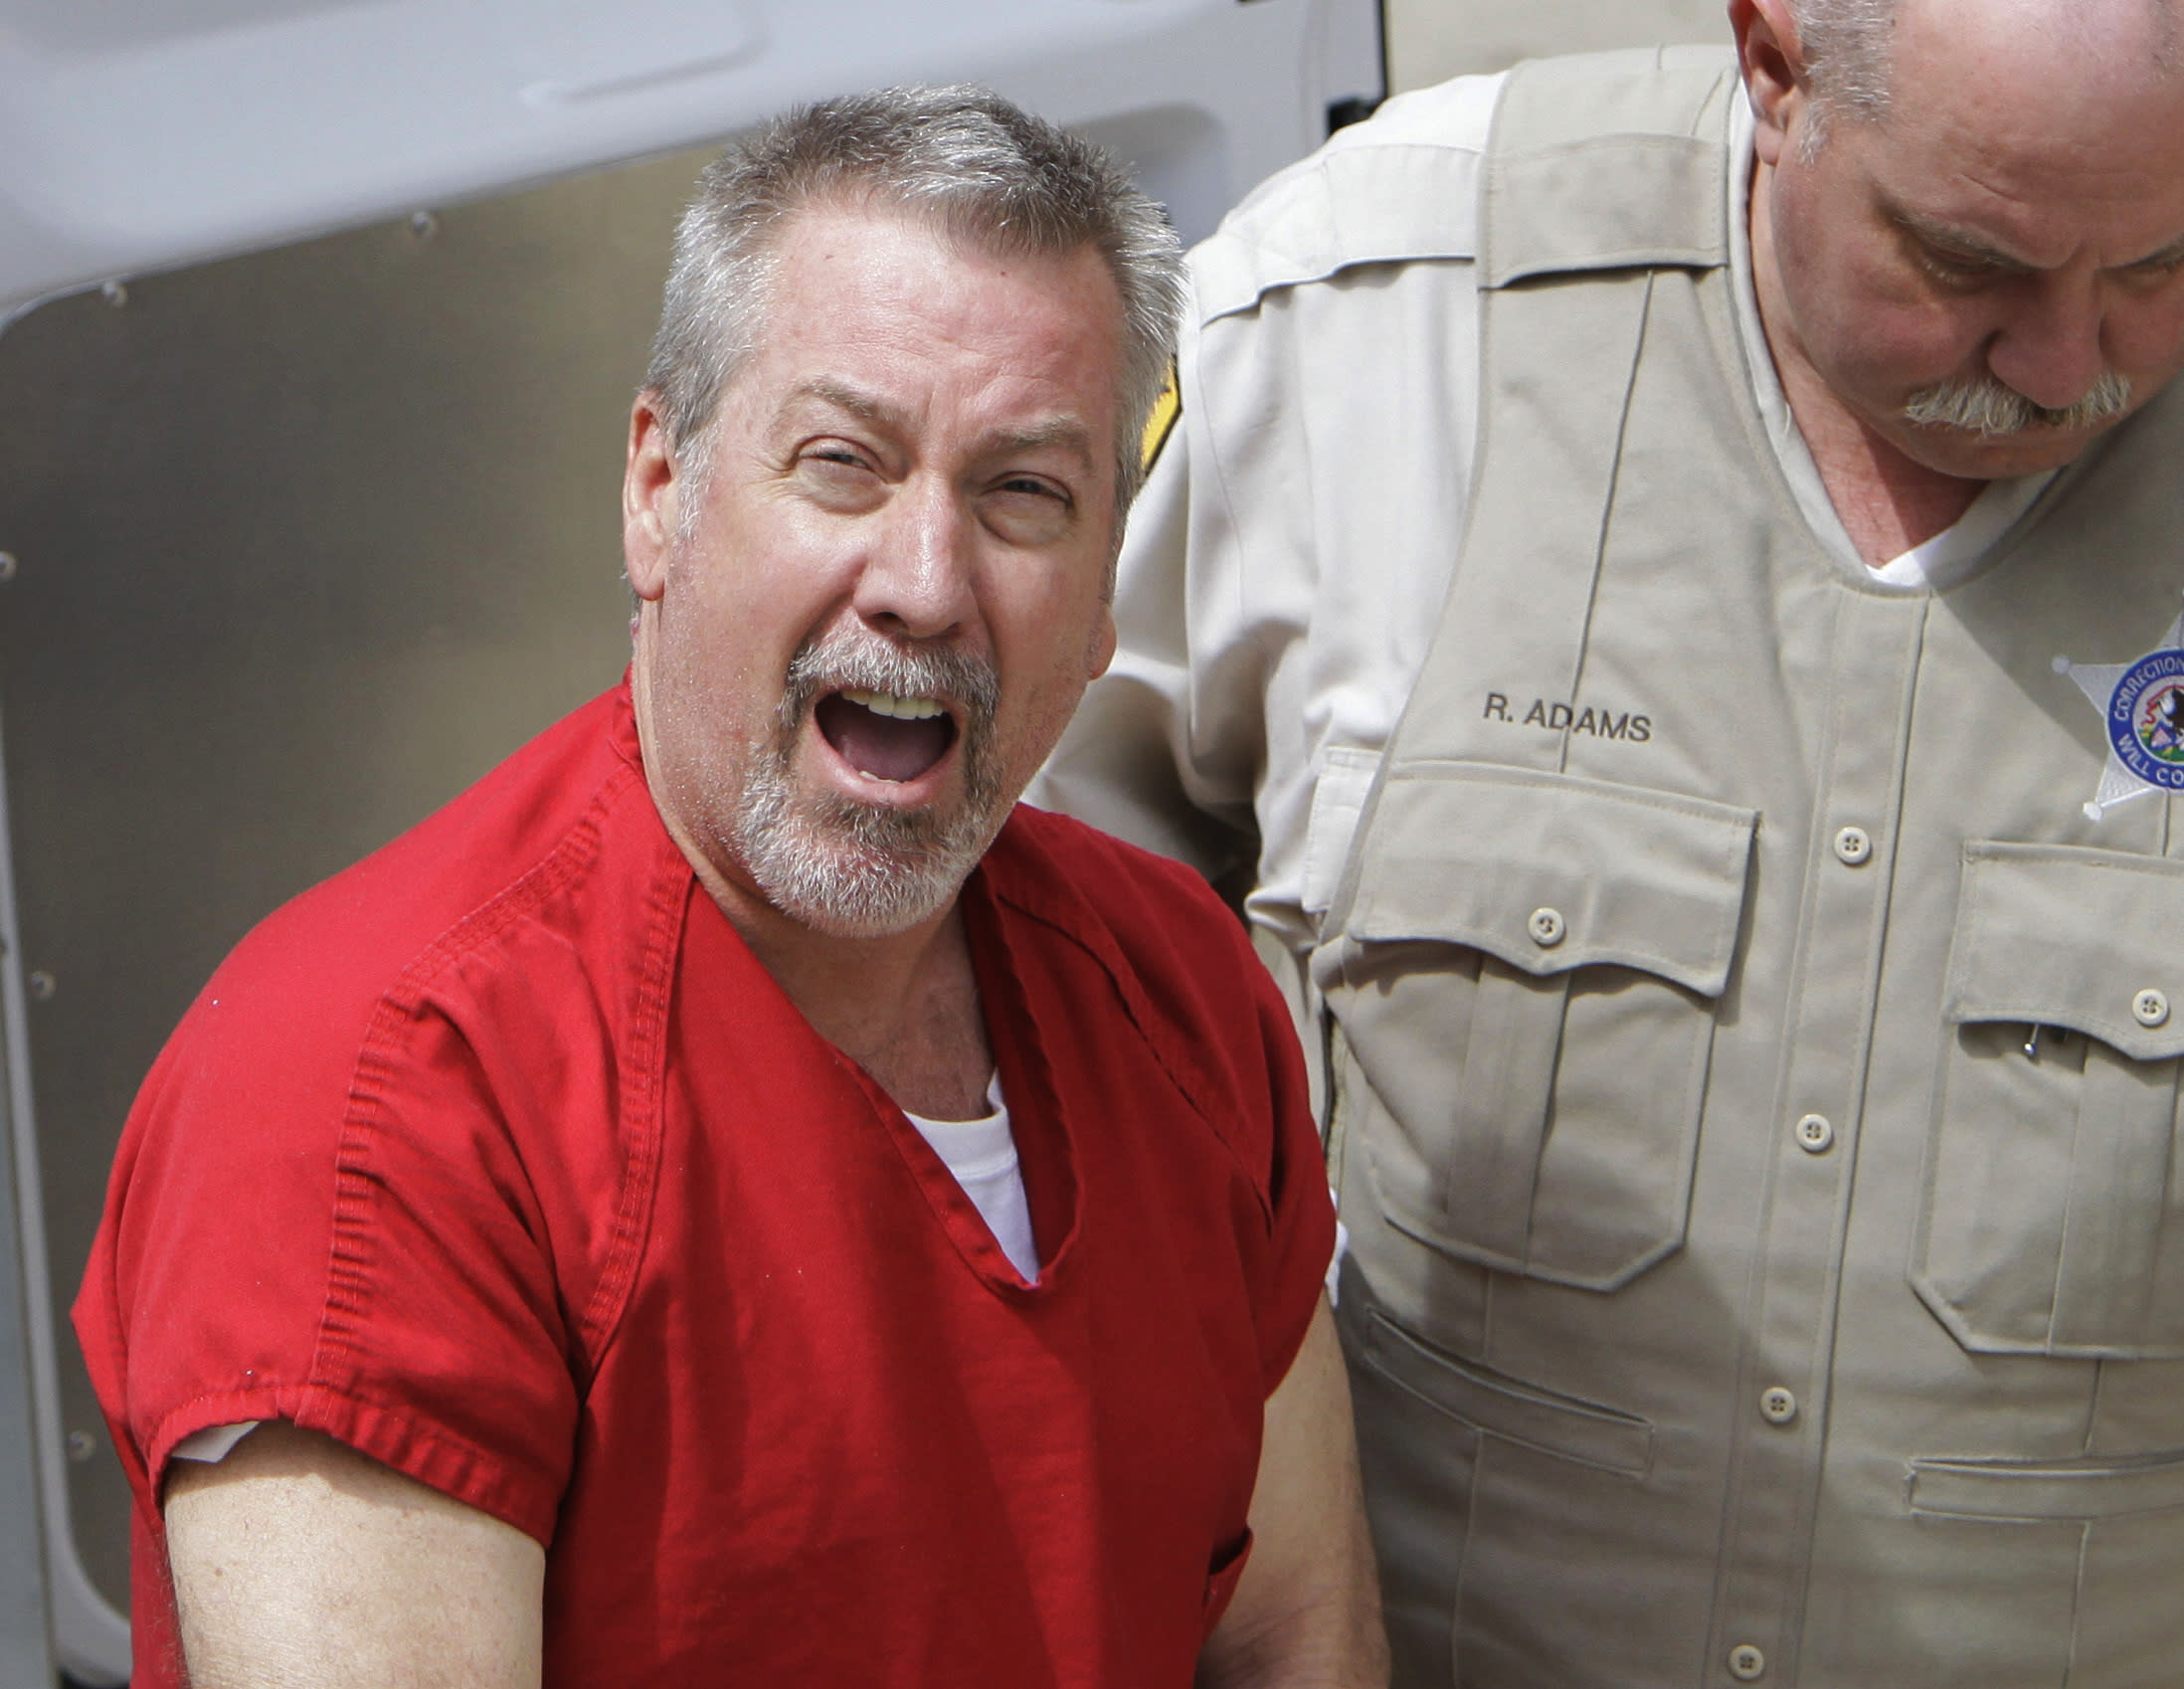 FILE - In this May 8, 2009 file photo, former Bolingbrook, Ill., police sergeant Drew Peterson arrives at the Will County Courthouse in Joliet, Ill., for his arraignment on charges of first-degree murder in the 2004 death of his third wife Kathleen Savio. On Thursday, Feb. 21, 2013, Will County Judge Edward Burmila sentenced Peterson to 38 years in prison for Savio's murder. (AP Photo/M. Spencer Green, File)